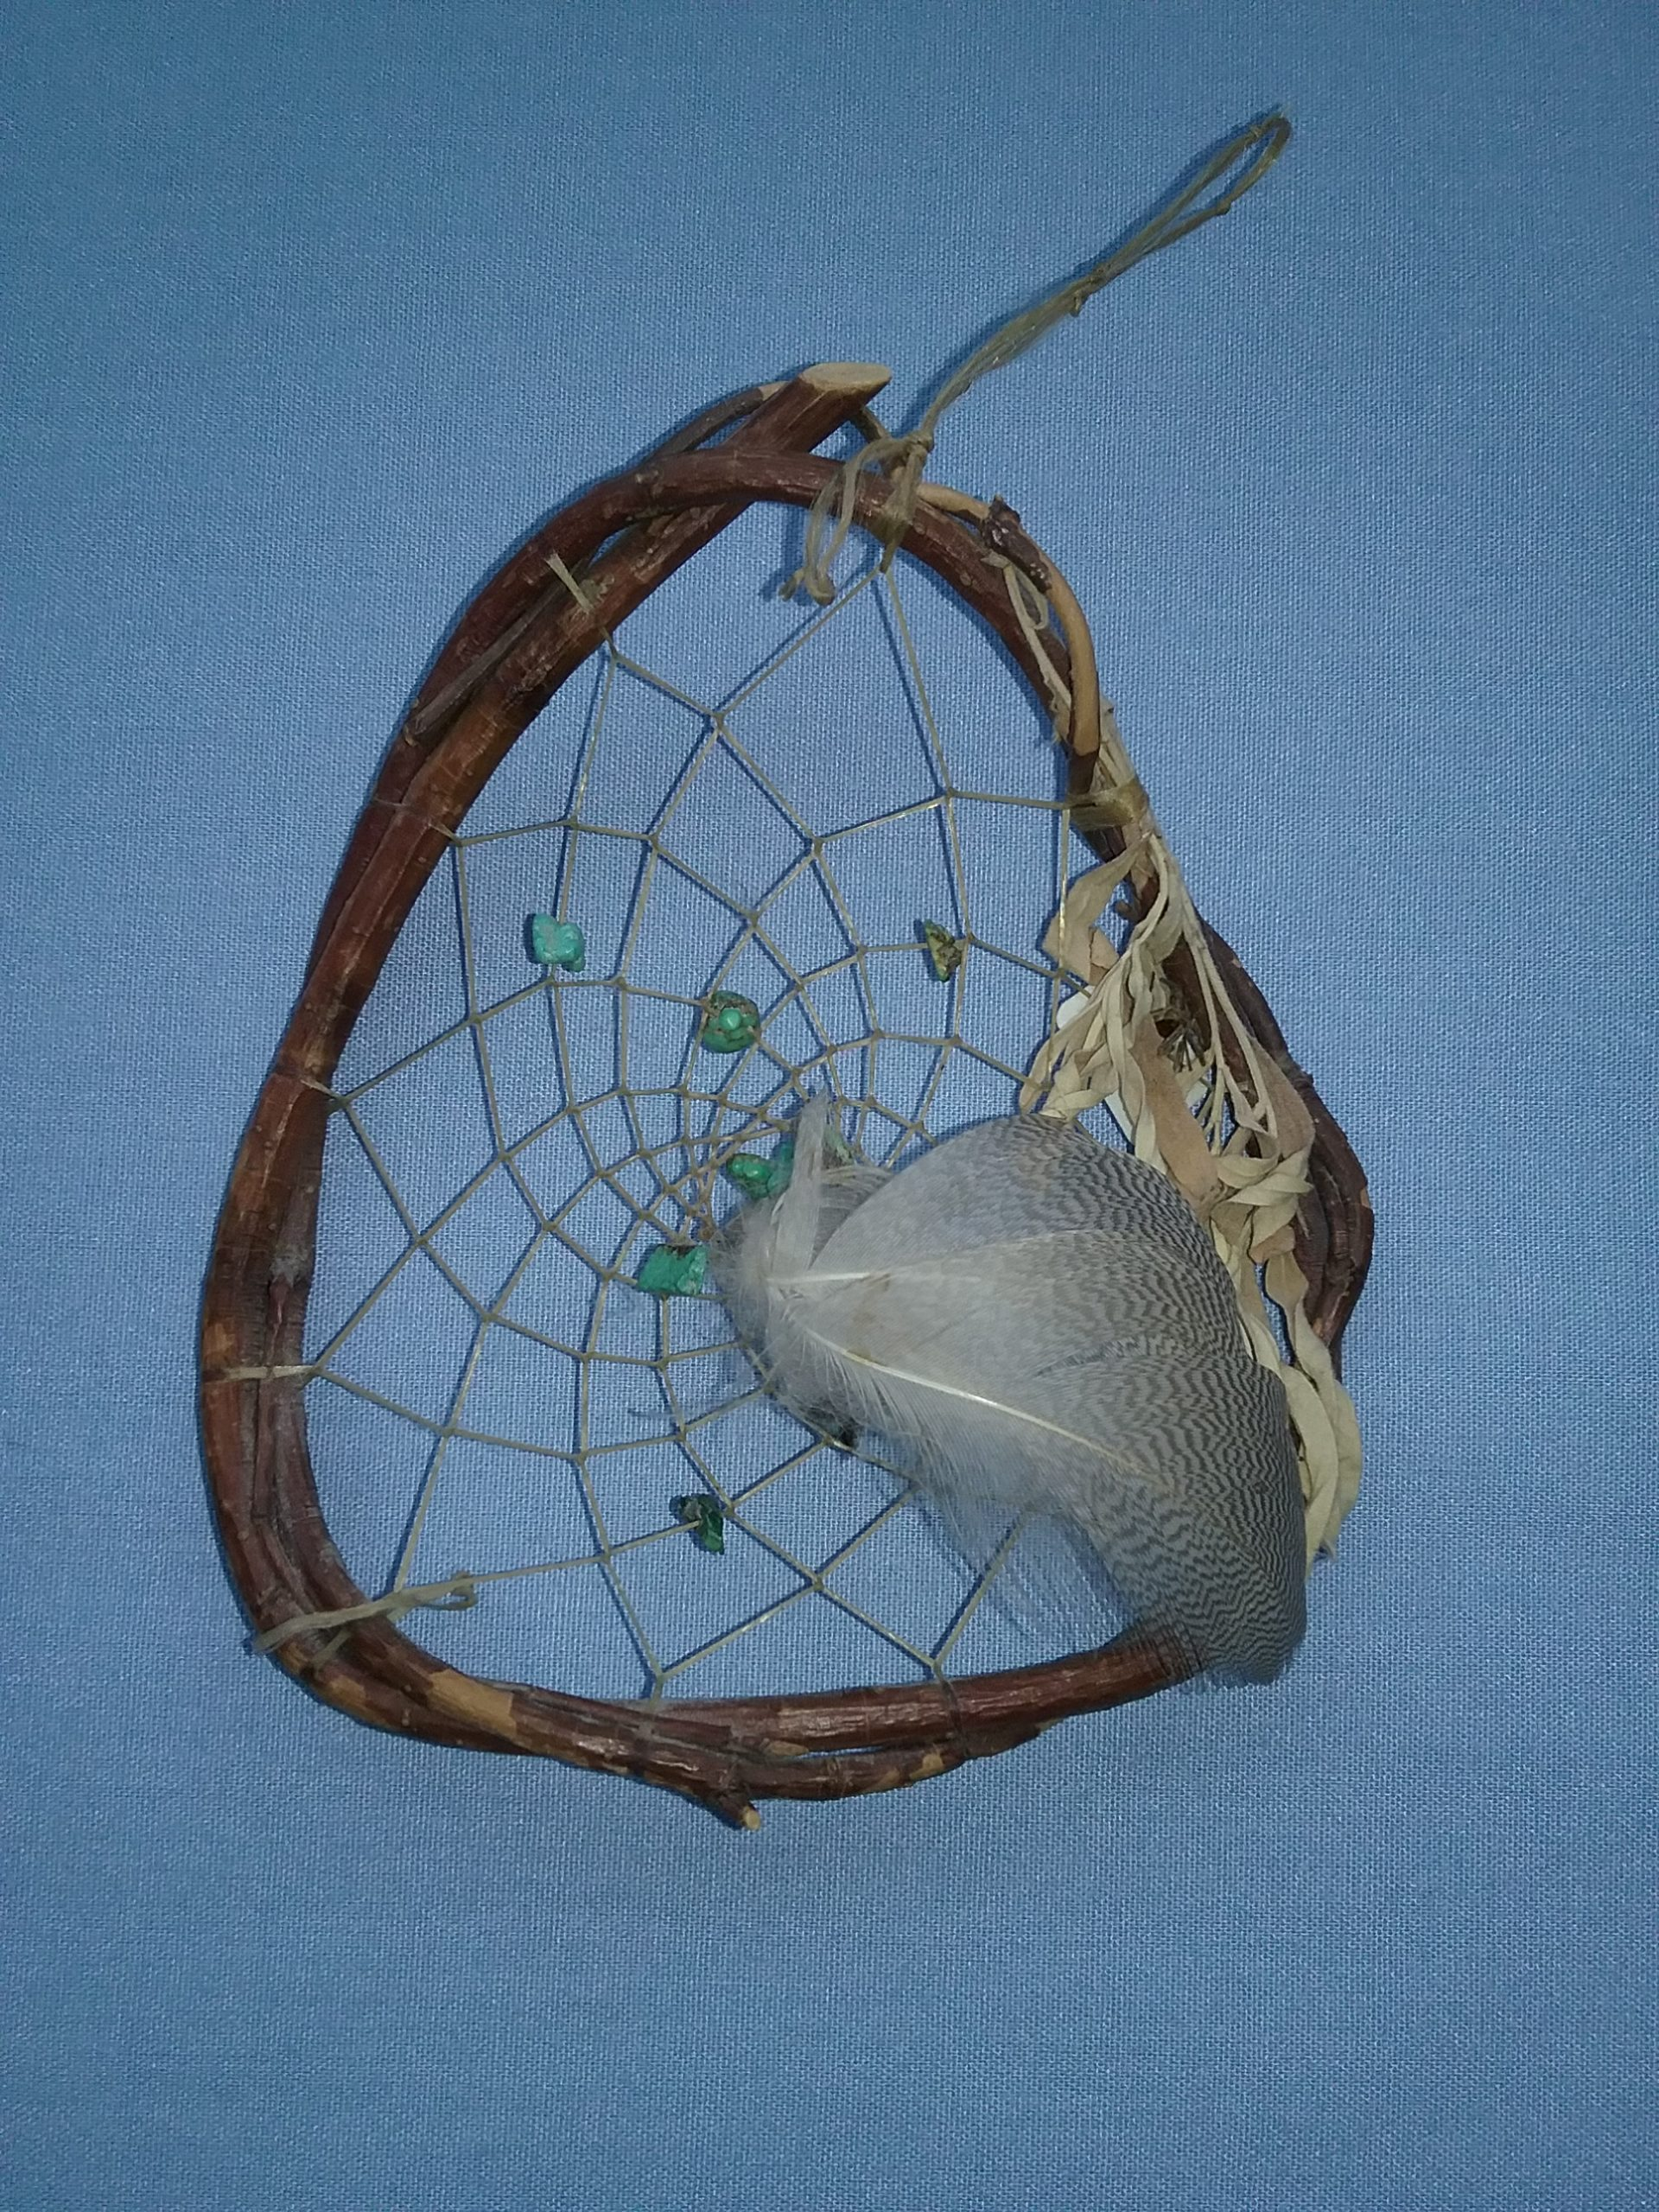 """Ojibwe dreamcatcher made by Lindalee Retka. Note the turquoise beads in the """"web"""" of the dreamcatcher. On loan from Jan Warner."""